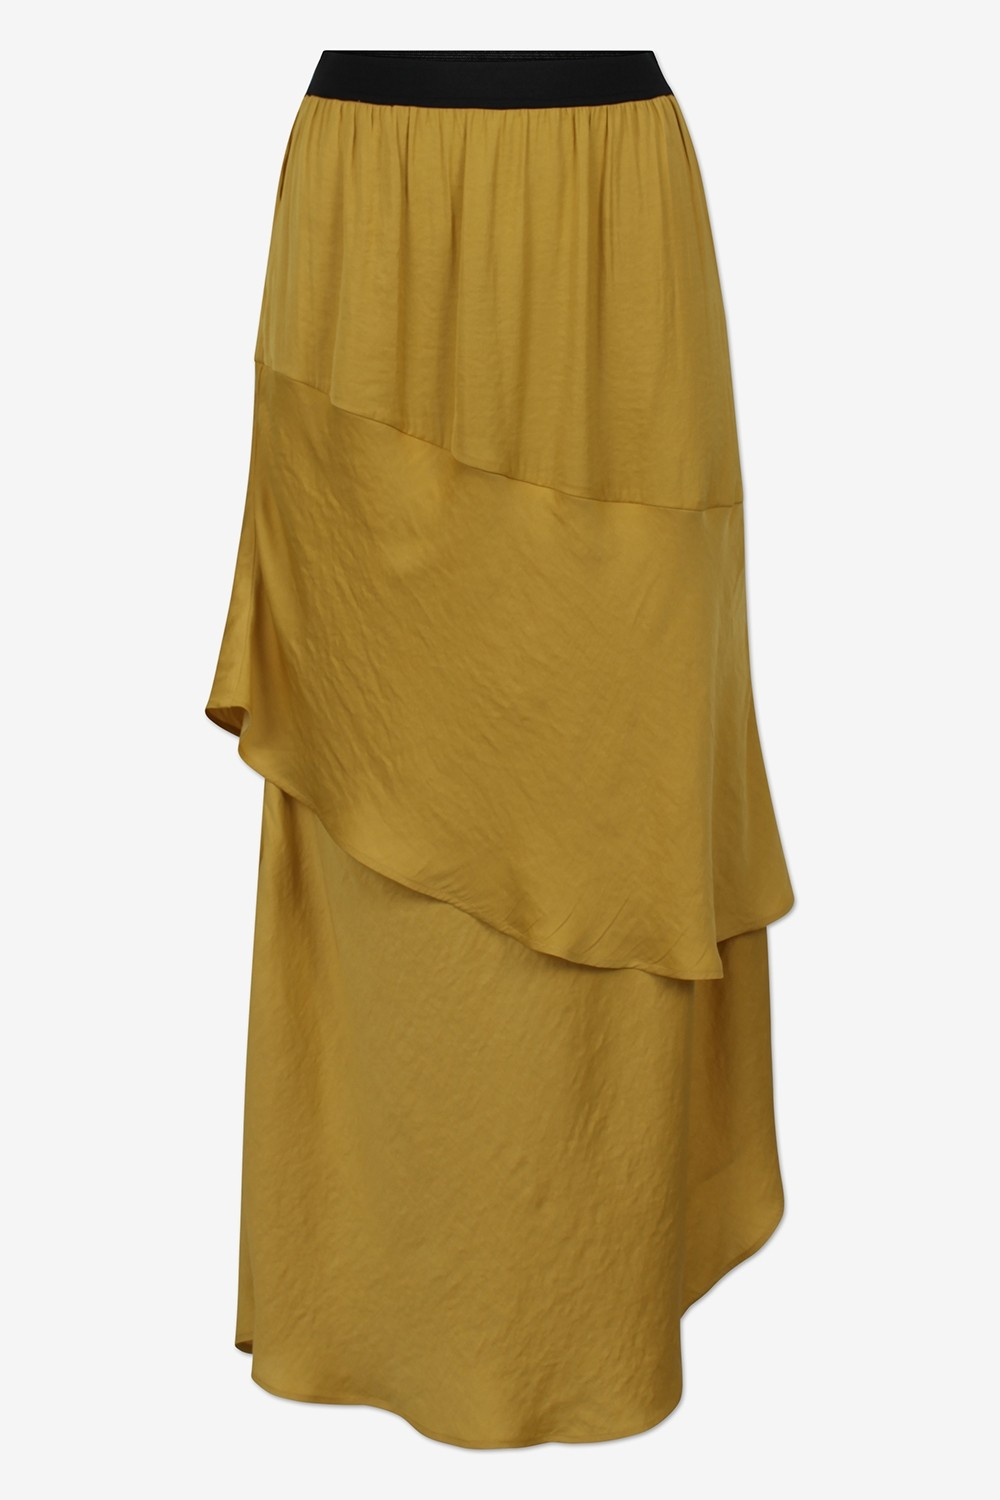 Six Ames Samour Special Edition Skirt C3162 Curry Yelow